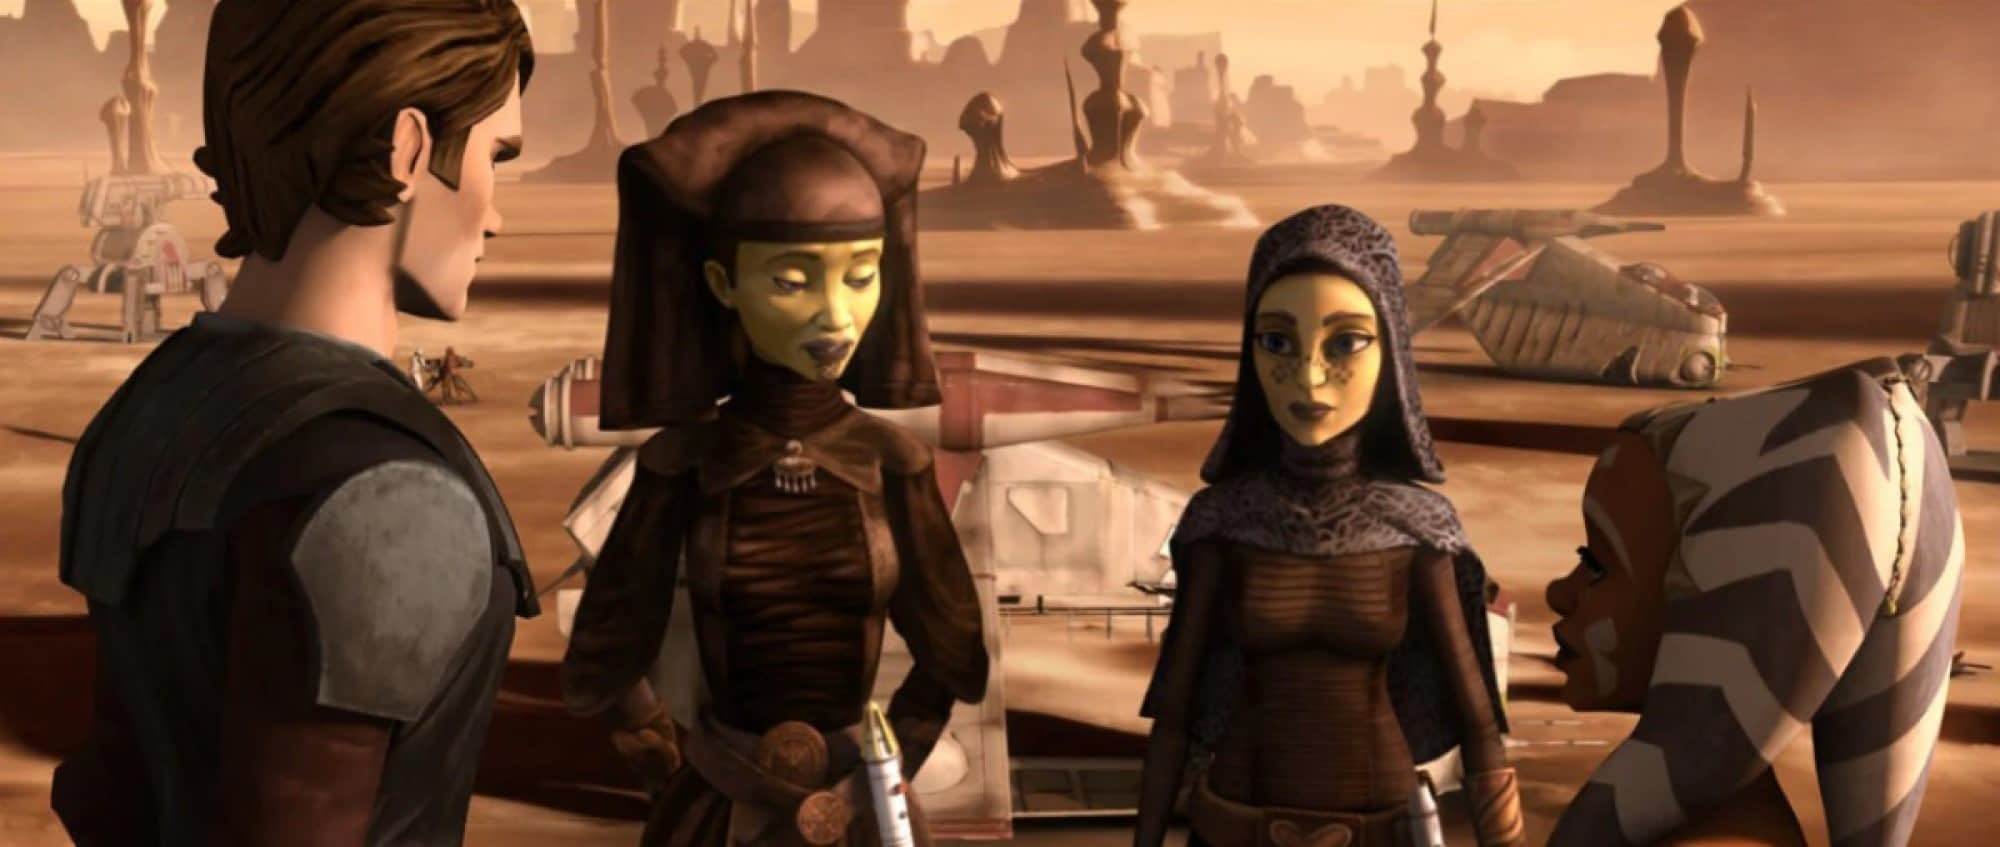 """Star Wars: The Clone Wars"" Episode IV - A New Retweet Hope [REVIEW]"